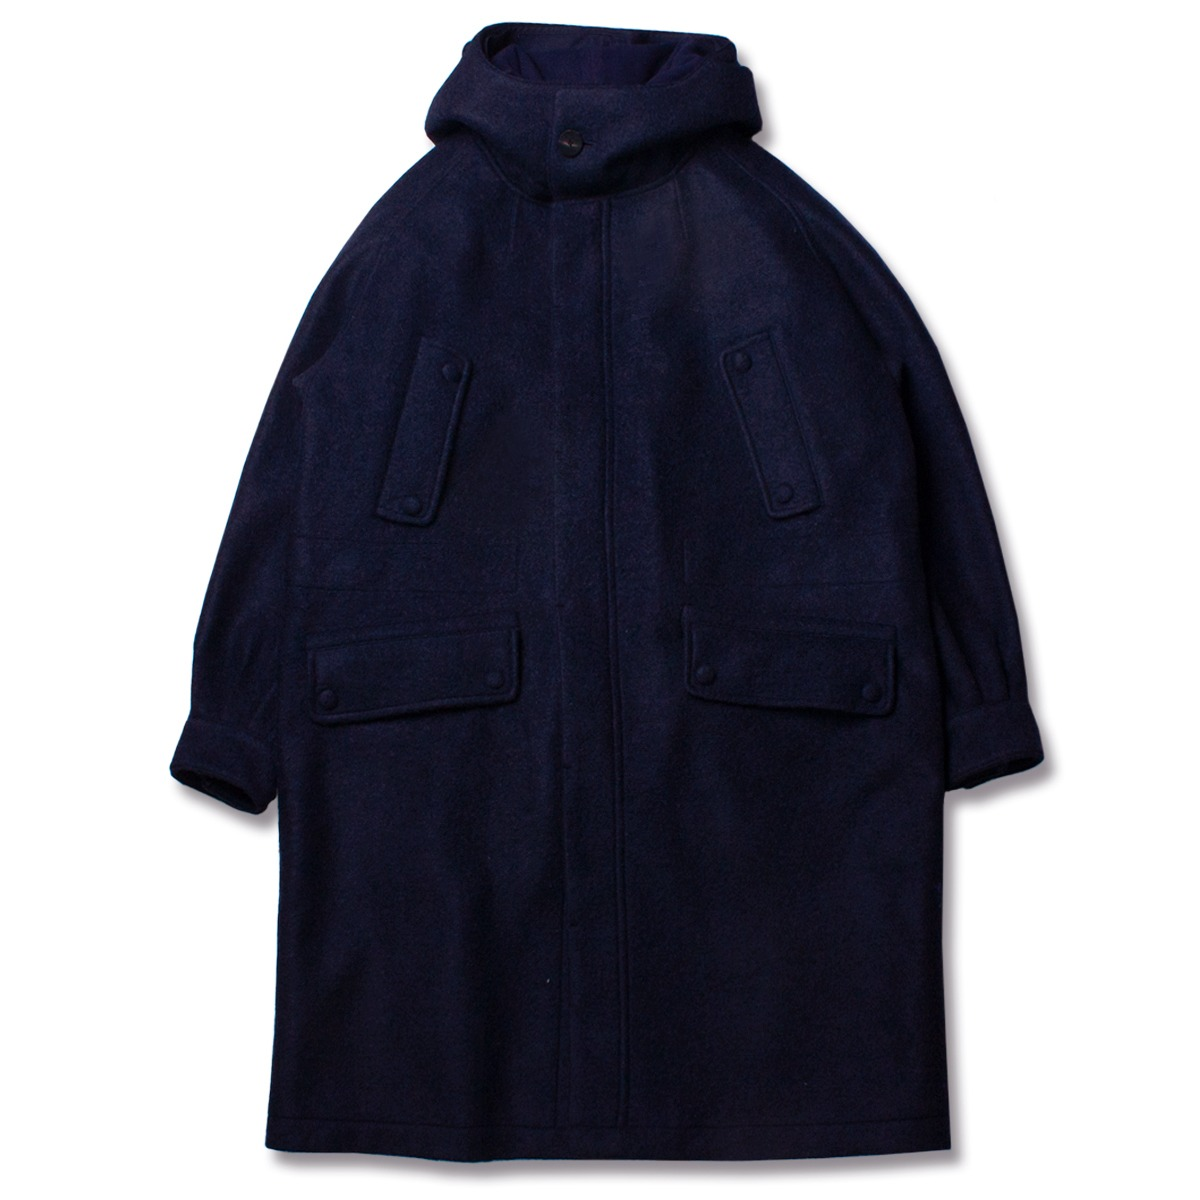 [DOCUMENT] THE DOCUMENT WOOL PARKA 'NAVY'